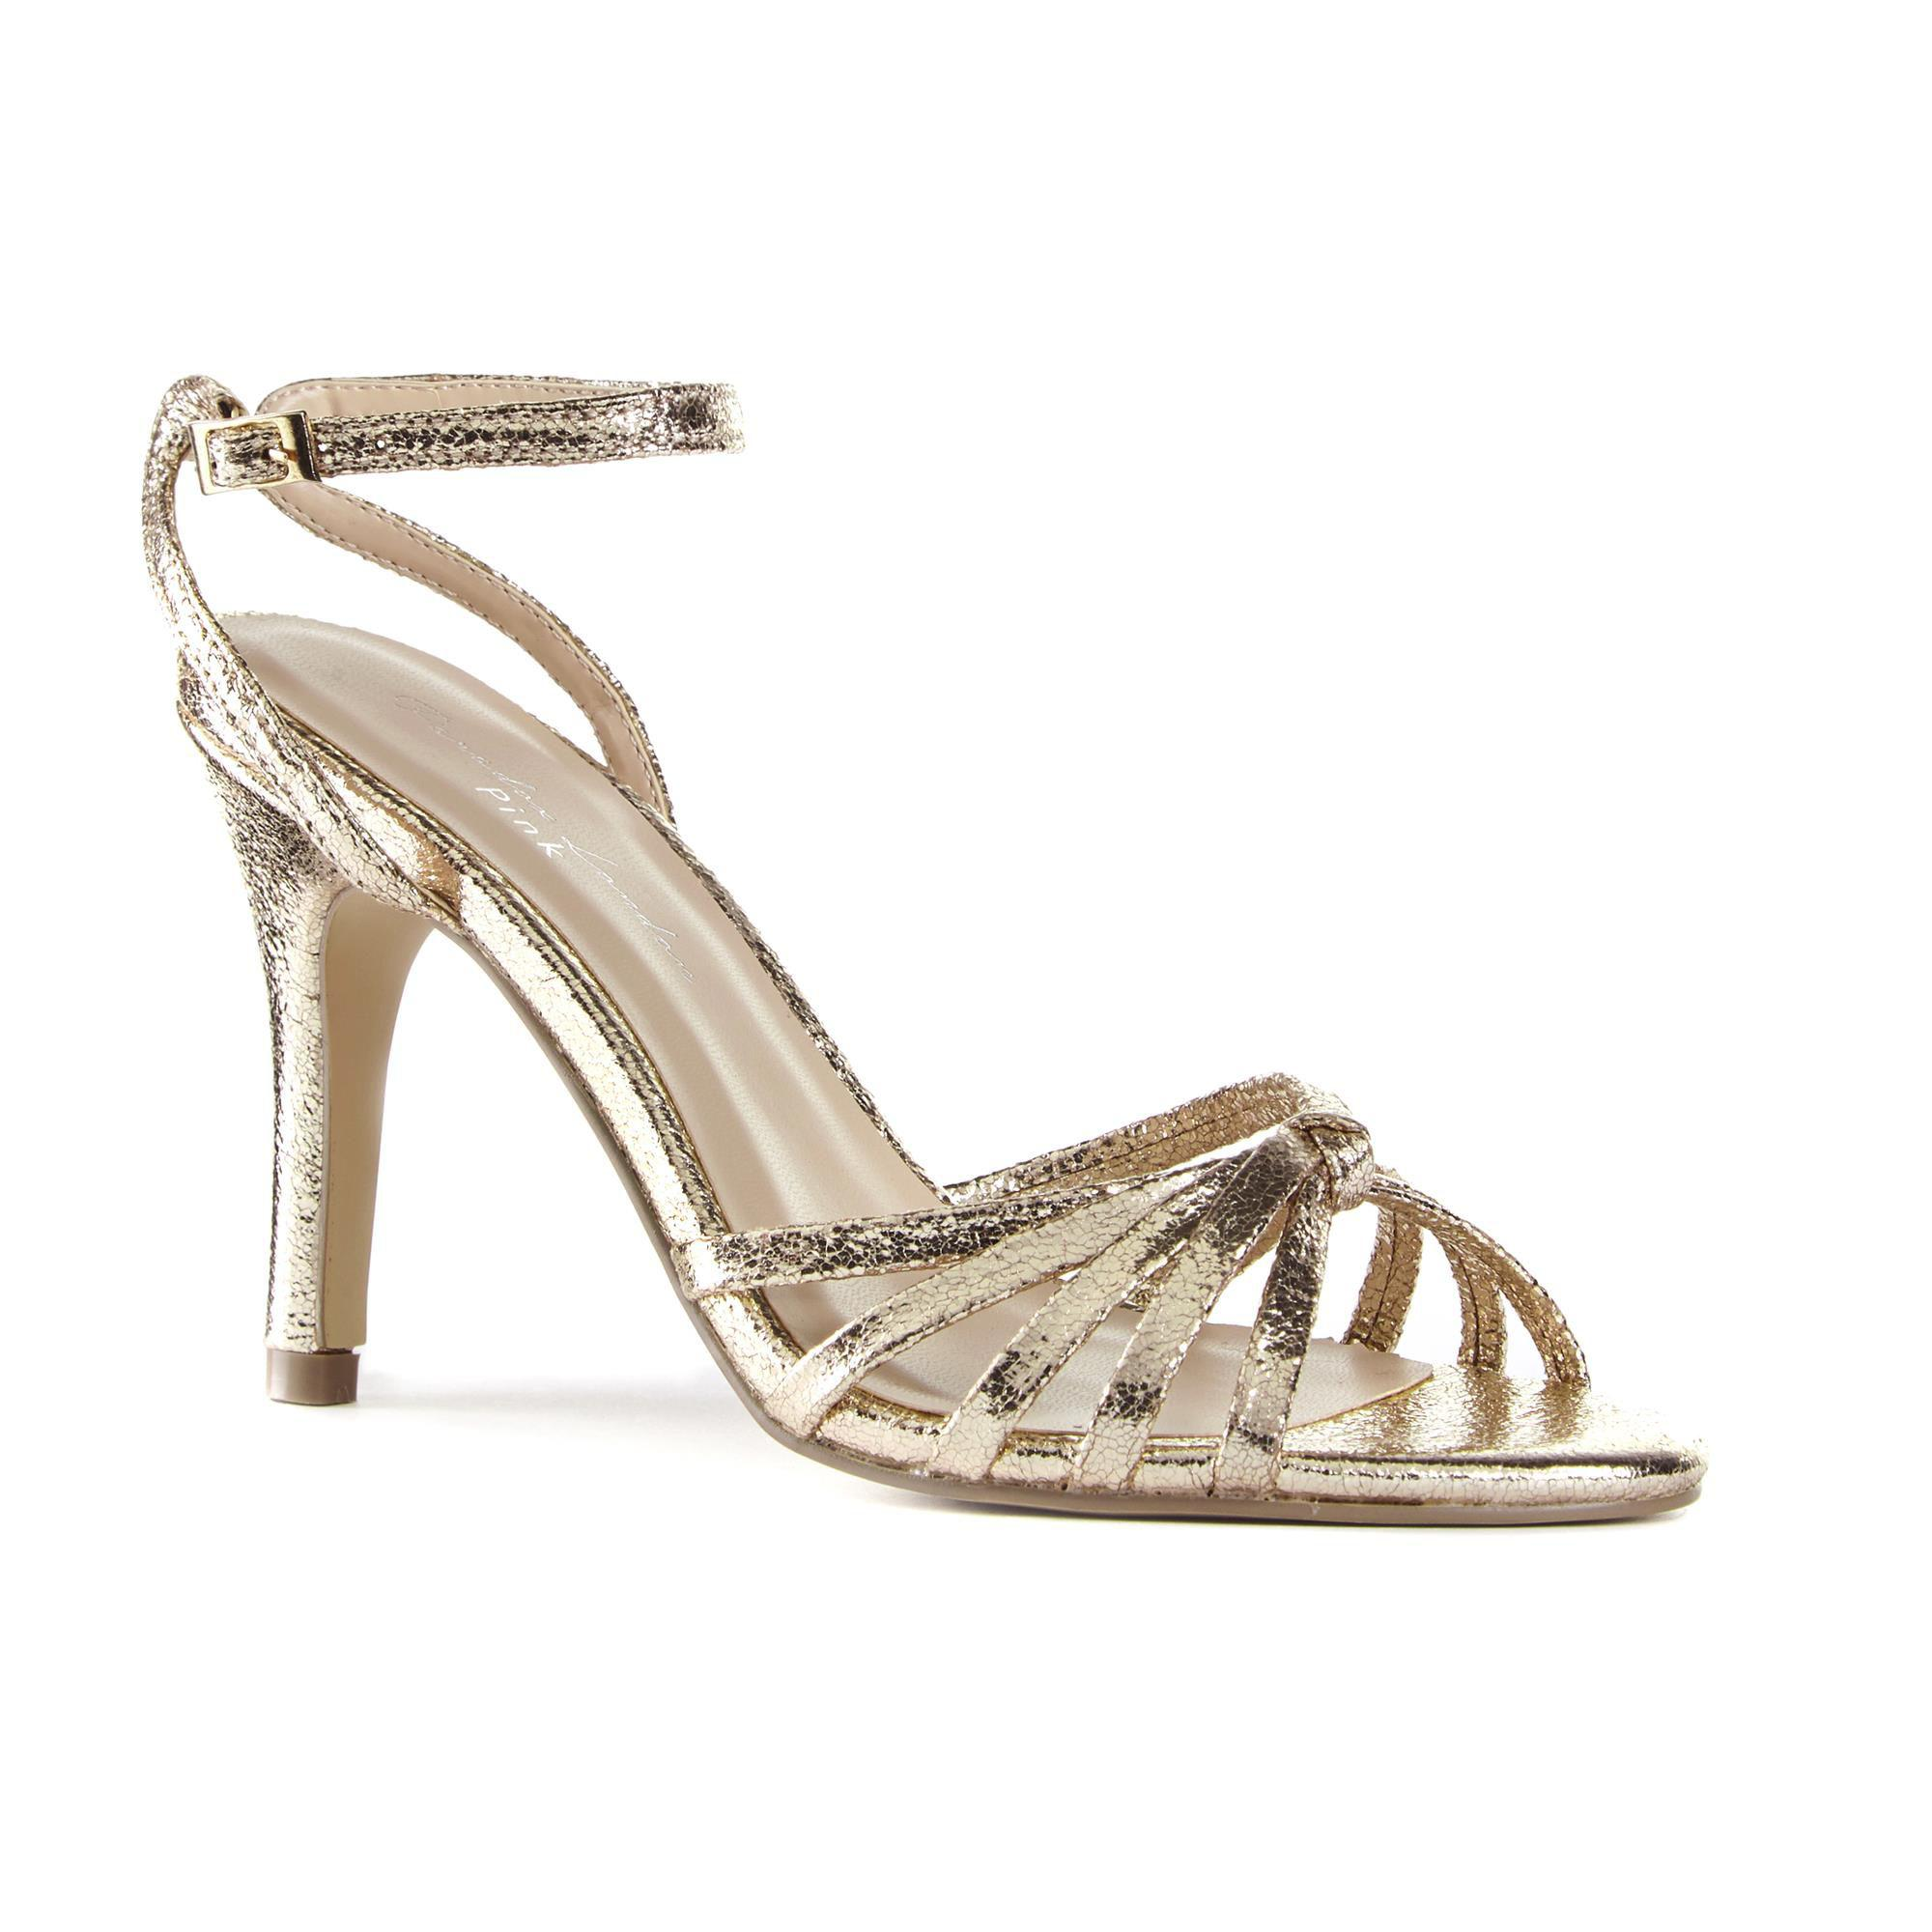 Paradox London Pink MADY - High heeled sandals - champagne crack metallic 03zqDpC